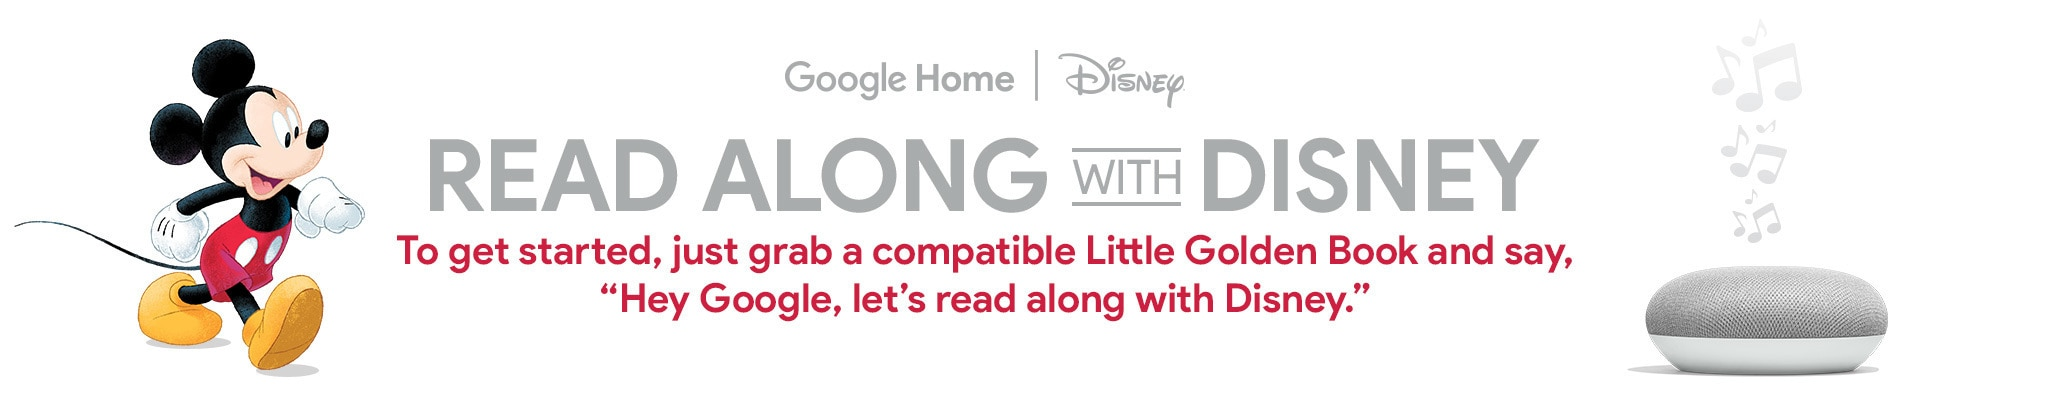 "Google Home | Disney - Read Along With Disney - To get started, just grab a compatible Little Golden Book and say, ""Hey Google, let's read along with Disney."""